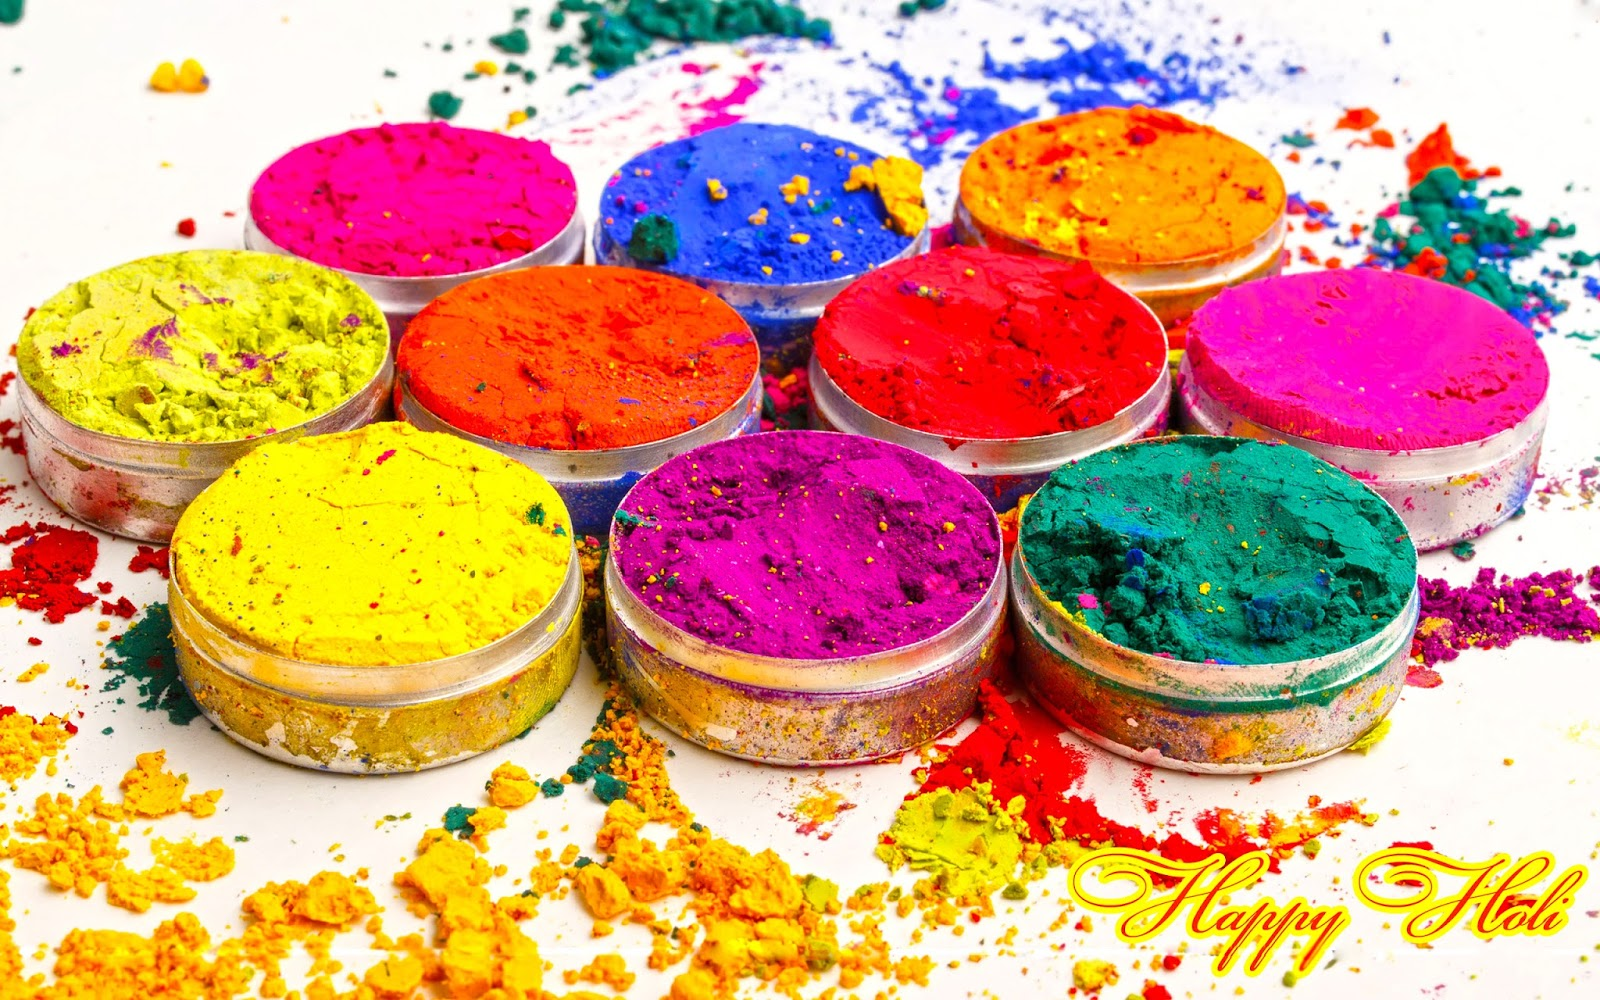 Happy Holi HD Wallpaper & SMS Messsages - Images of love